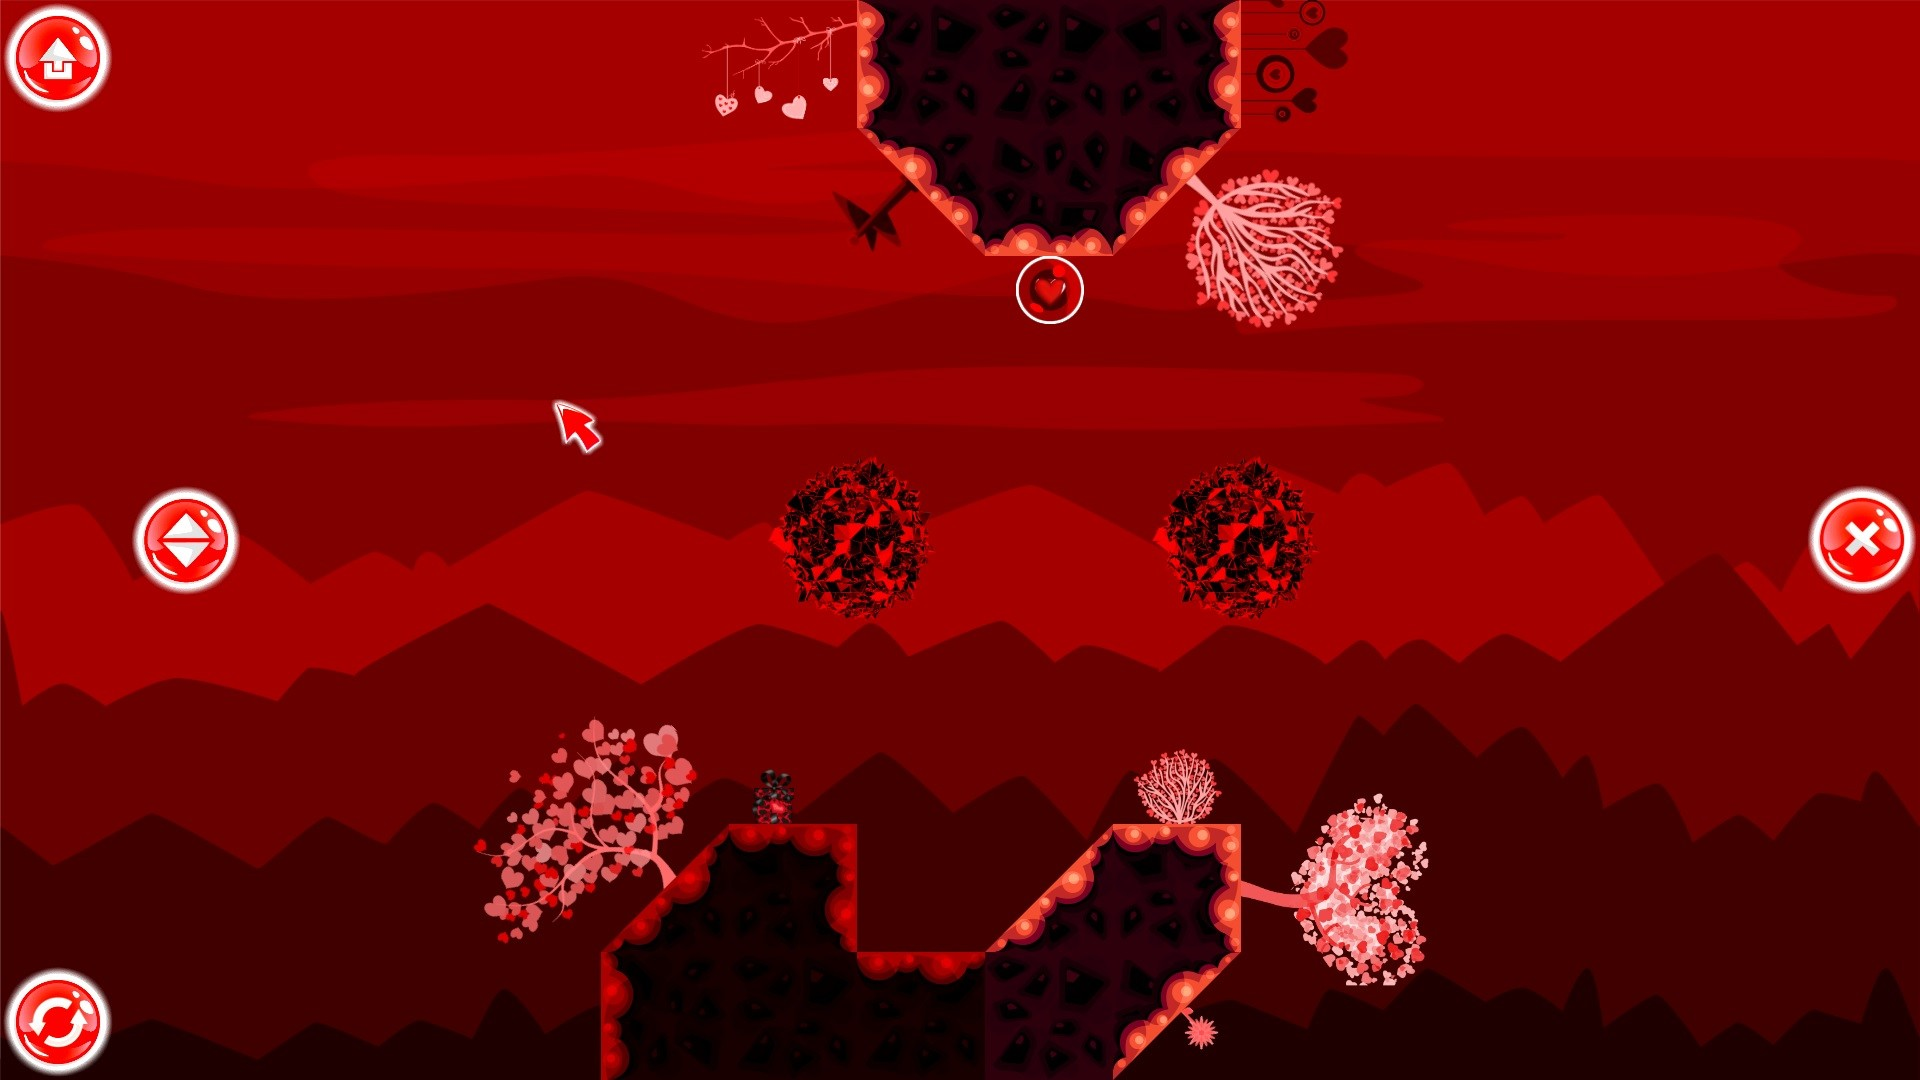 GraFi Valentine screenshot